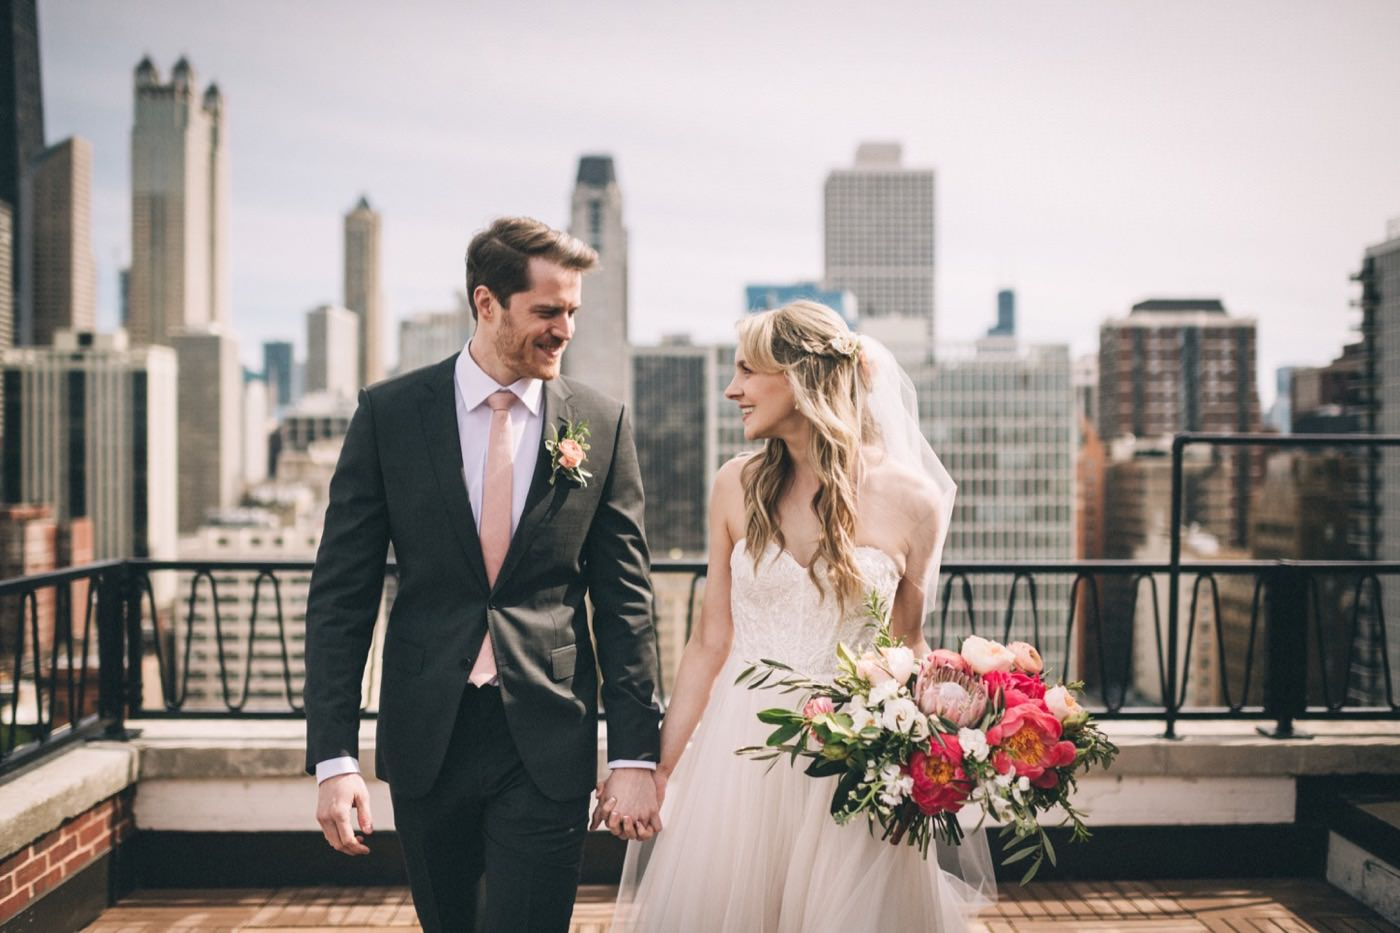 17_Lucy-Daniel-Chicago-Wedding-By-Sarah-Katherine-Davis-Photography0208edit.jpg